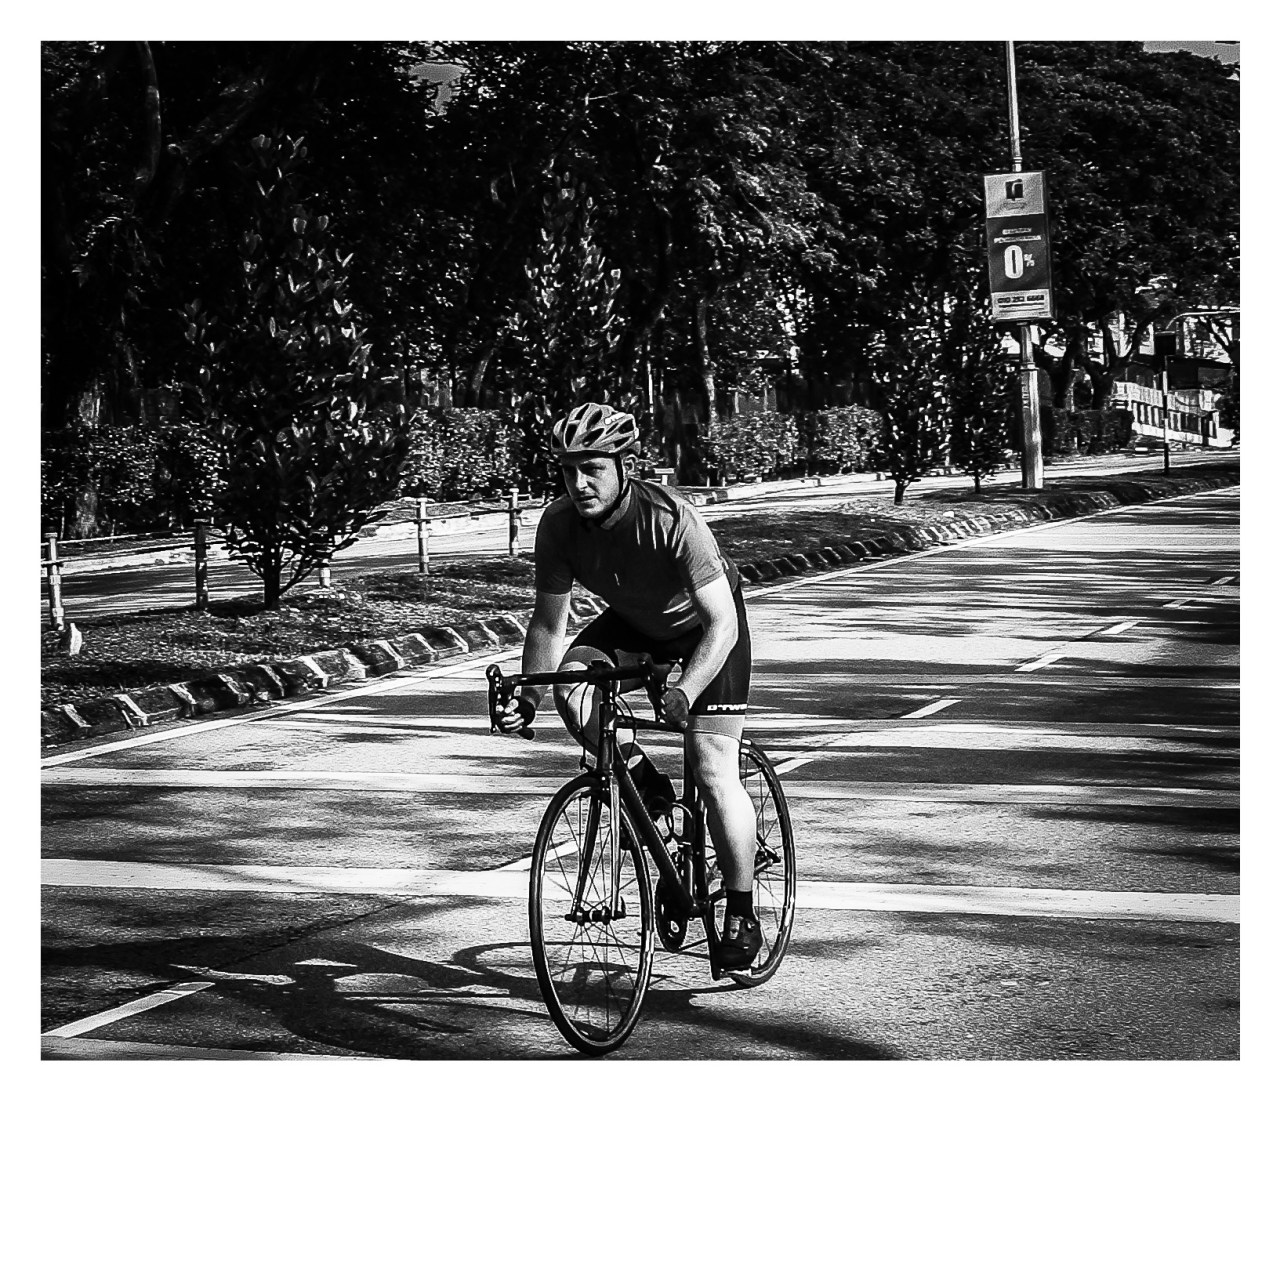 A shadowed picture of a cyclist on the road in Malaysia